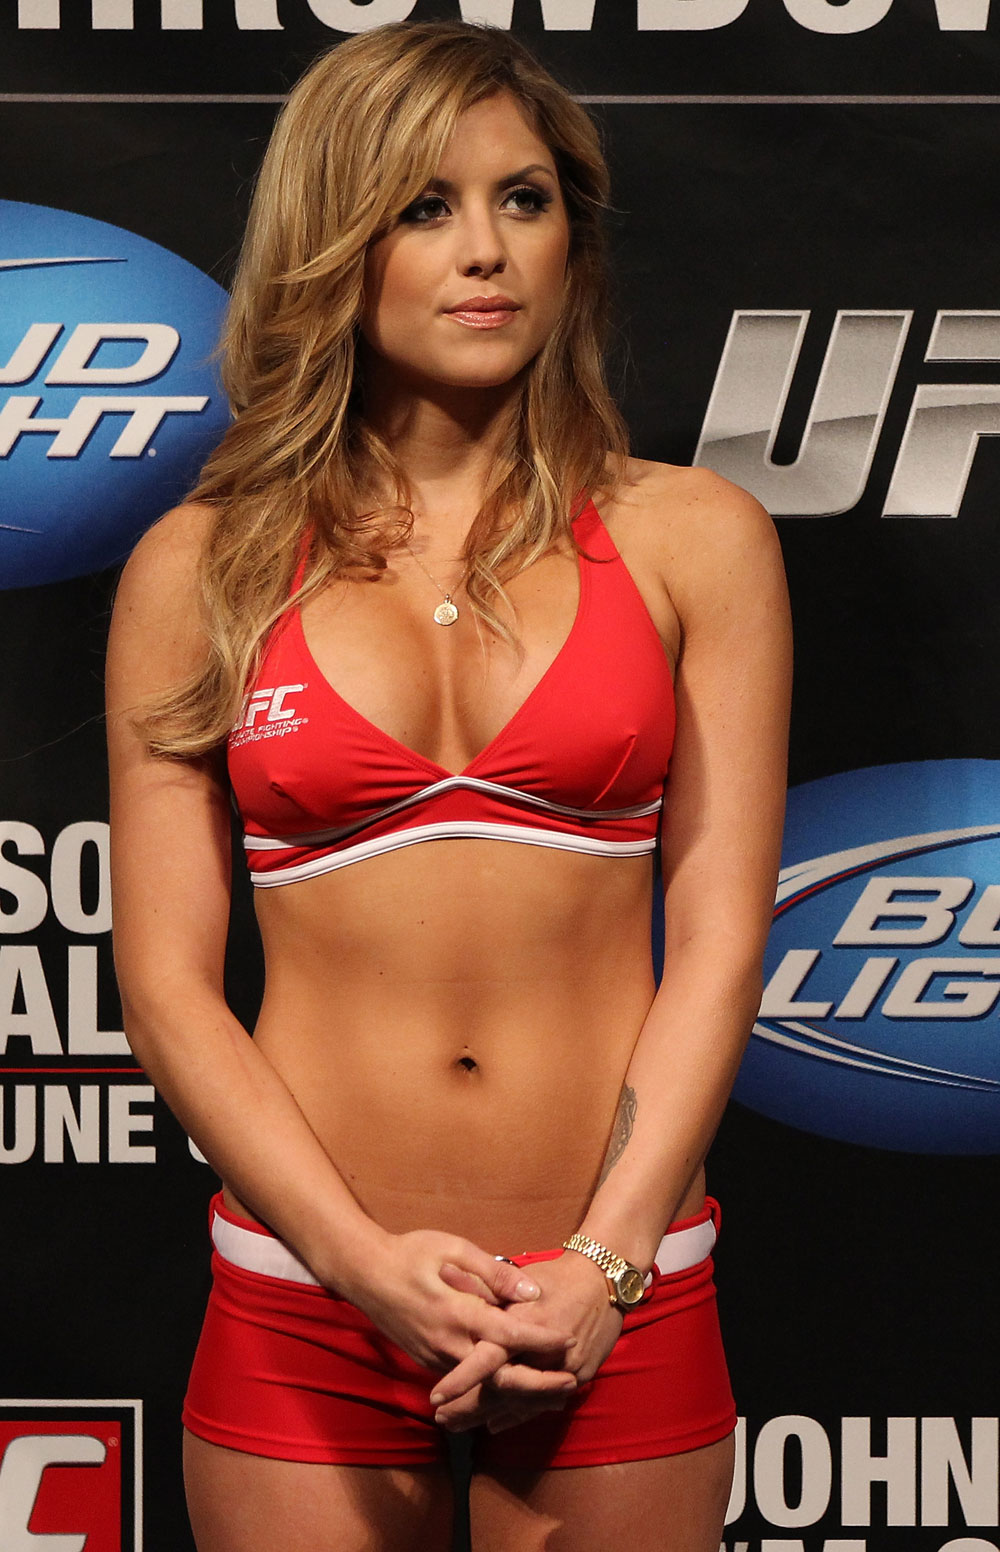 SUNRISE, FL - JUNE 07:   UFC Octagon Girl Brittney Palmer attends the UFC on FX 3 official weigh in at Bank Atlantic Center on June 7, 2012 in Sunrise, Florida.  (Photo by Josh Hedges/Zuffa LLC/Zuffa LLC via Getty Images)